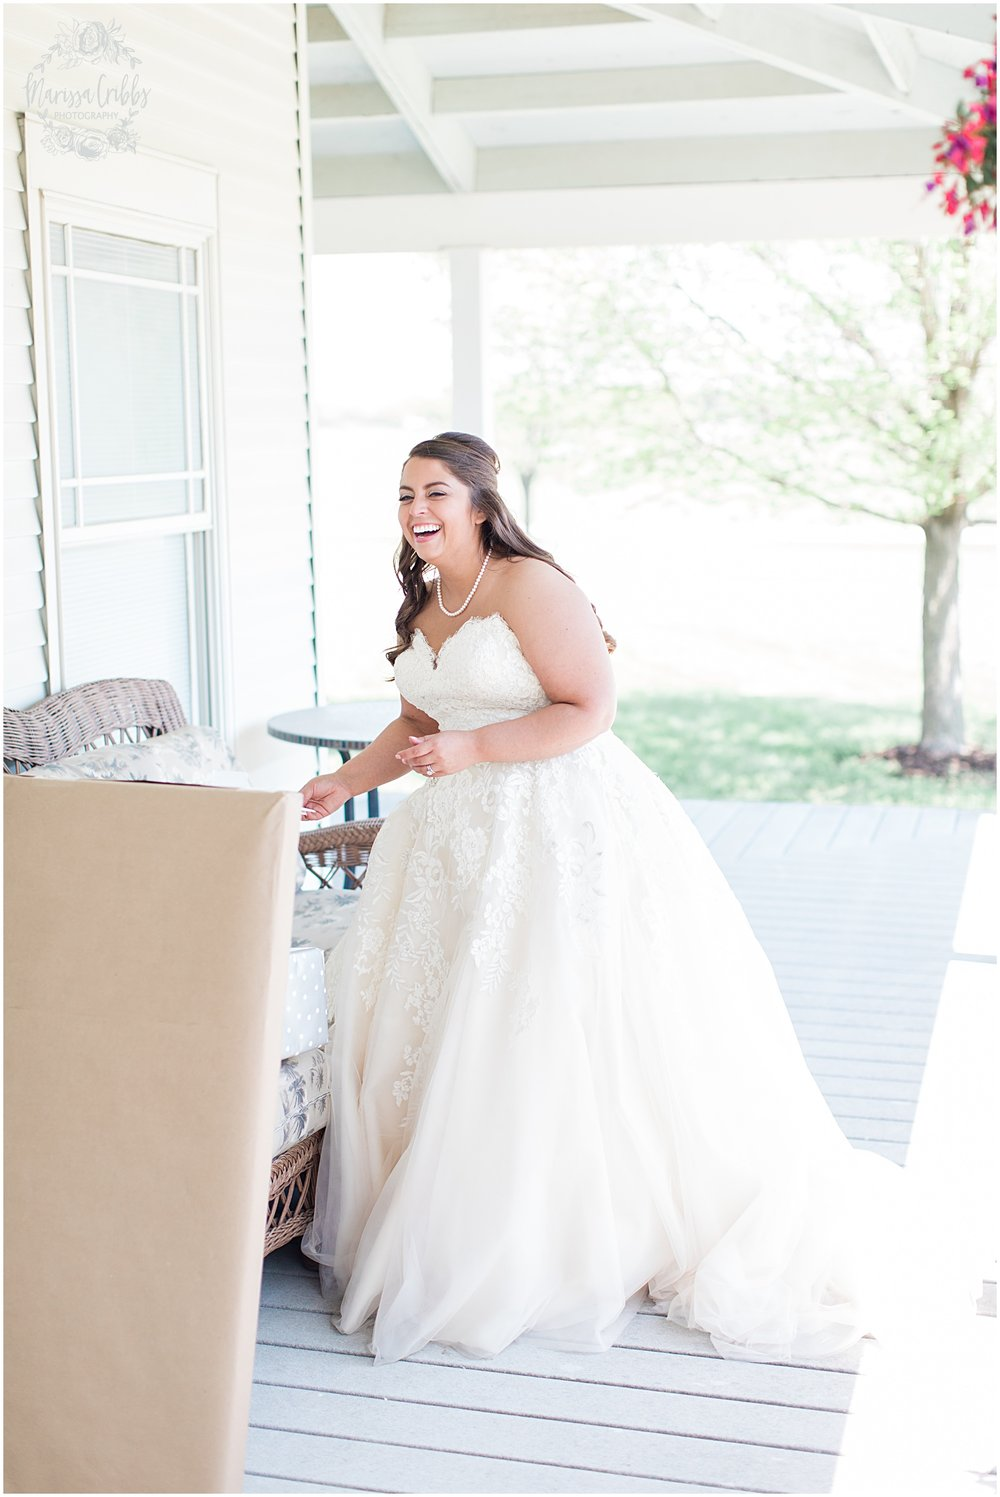 ANDREA & MICHAEL WEDDING | HICKORY CREEK RANCH | MARISSA CRIBBS PHOTOGRAPHY_4833.jpg